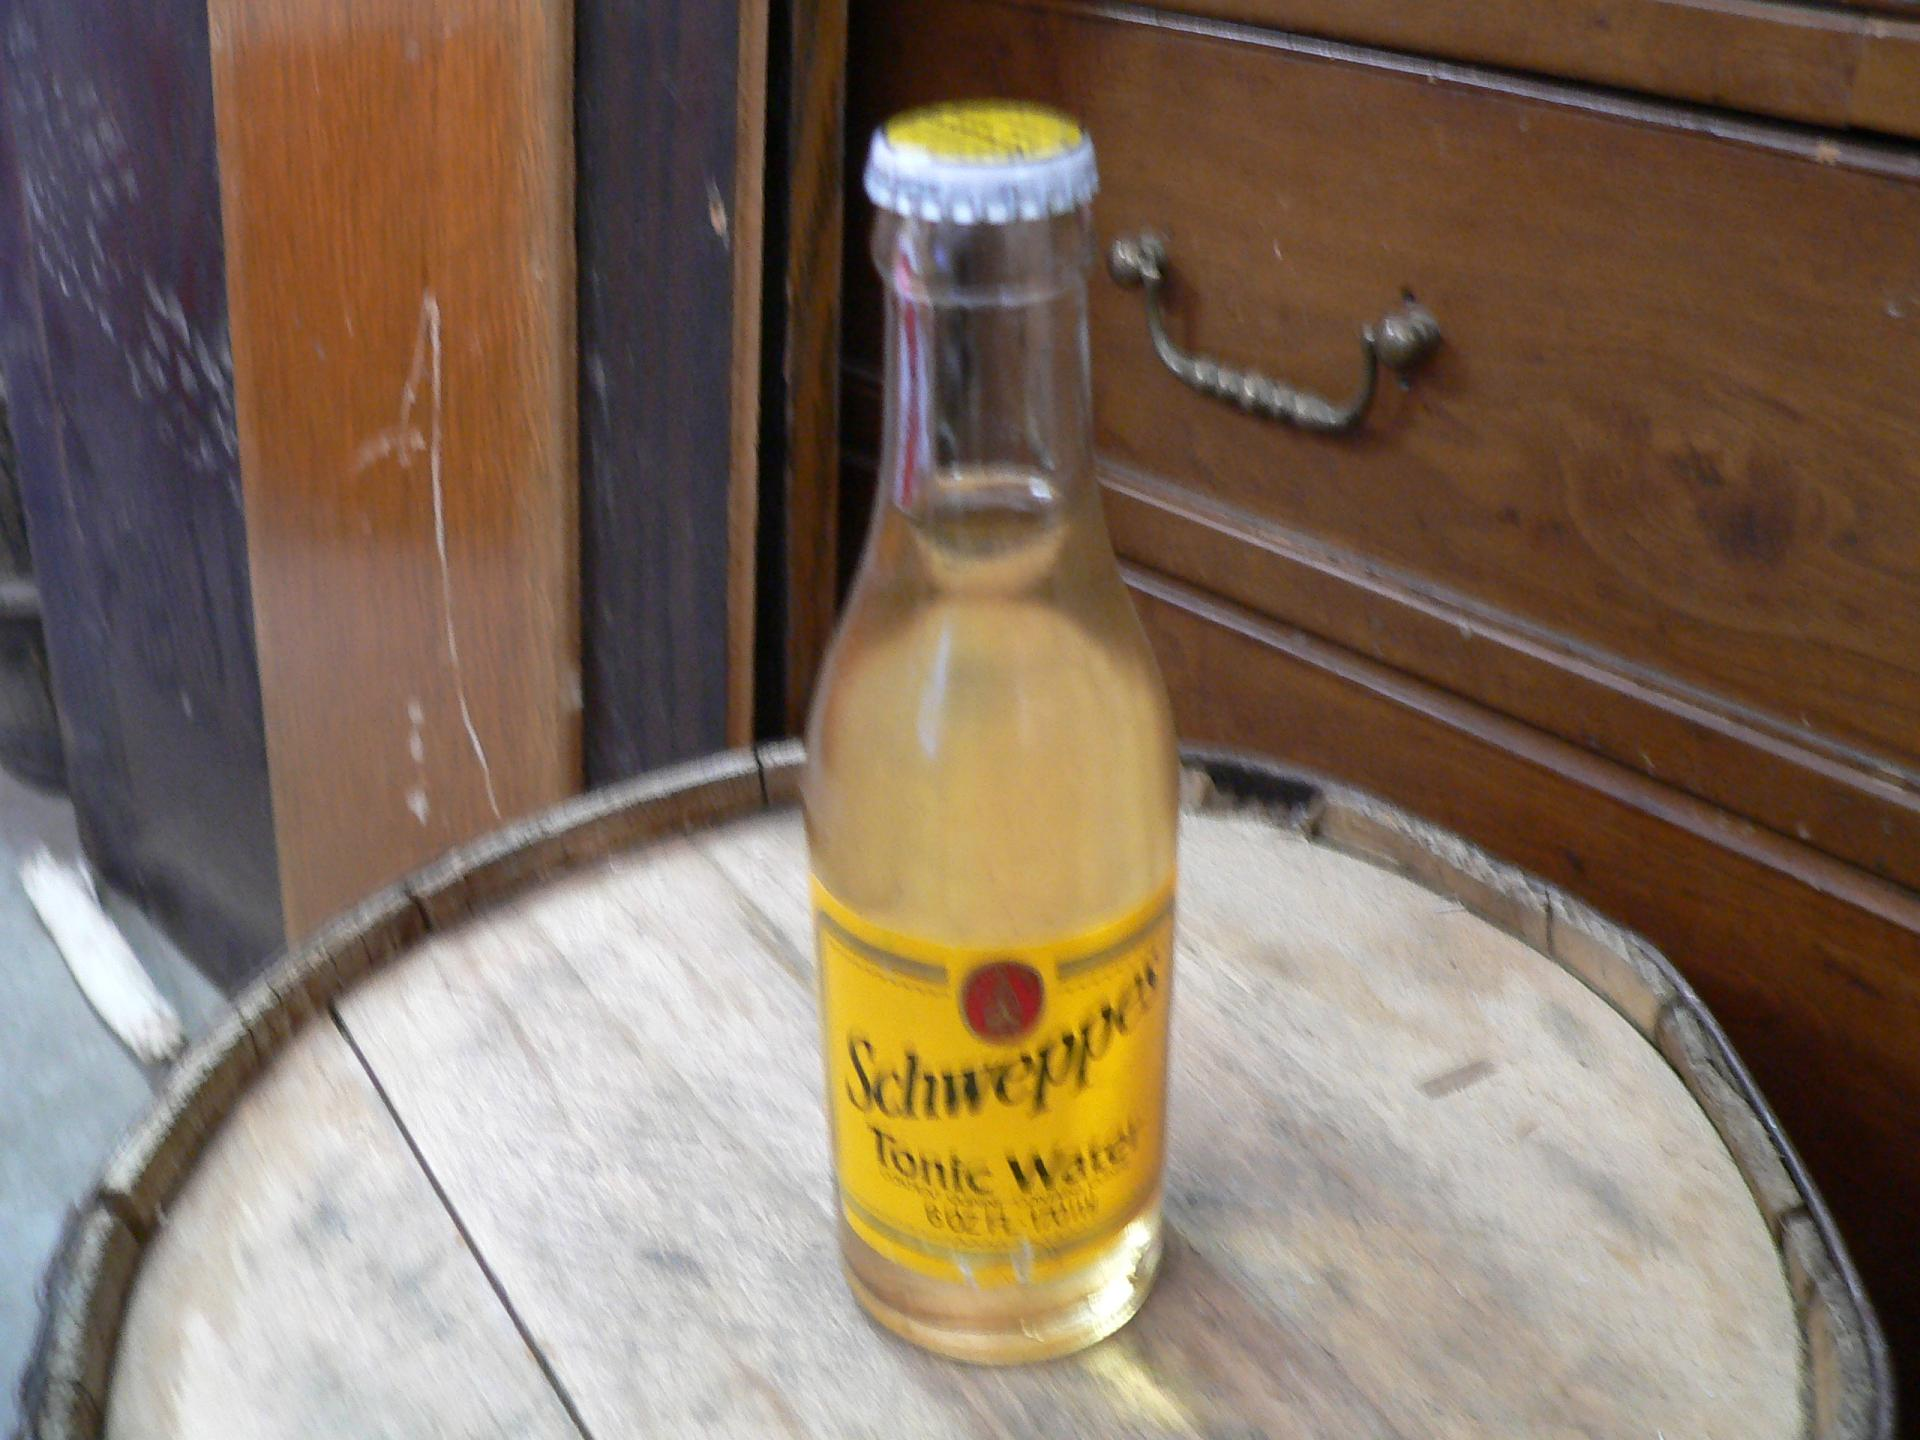 Bouteille schweppes tonic water # 5046.4